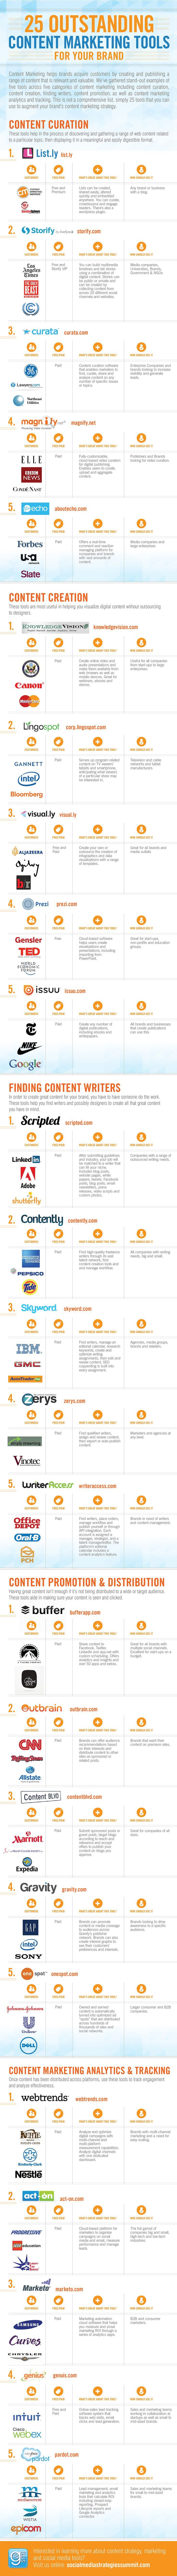 Some of the best content marketing tools in 2014. Resource from the Social Media Strategies Summit.